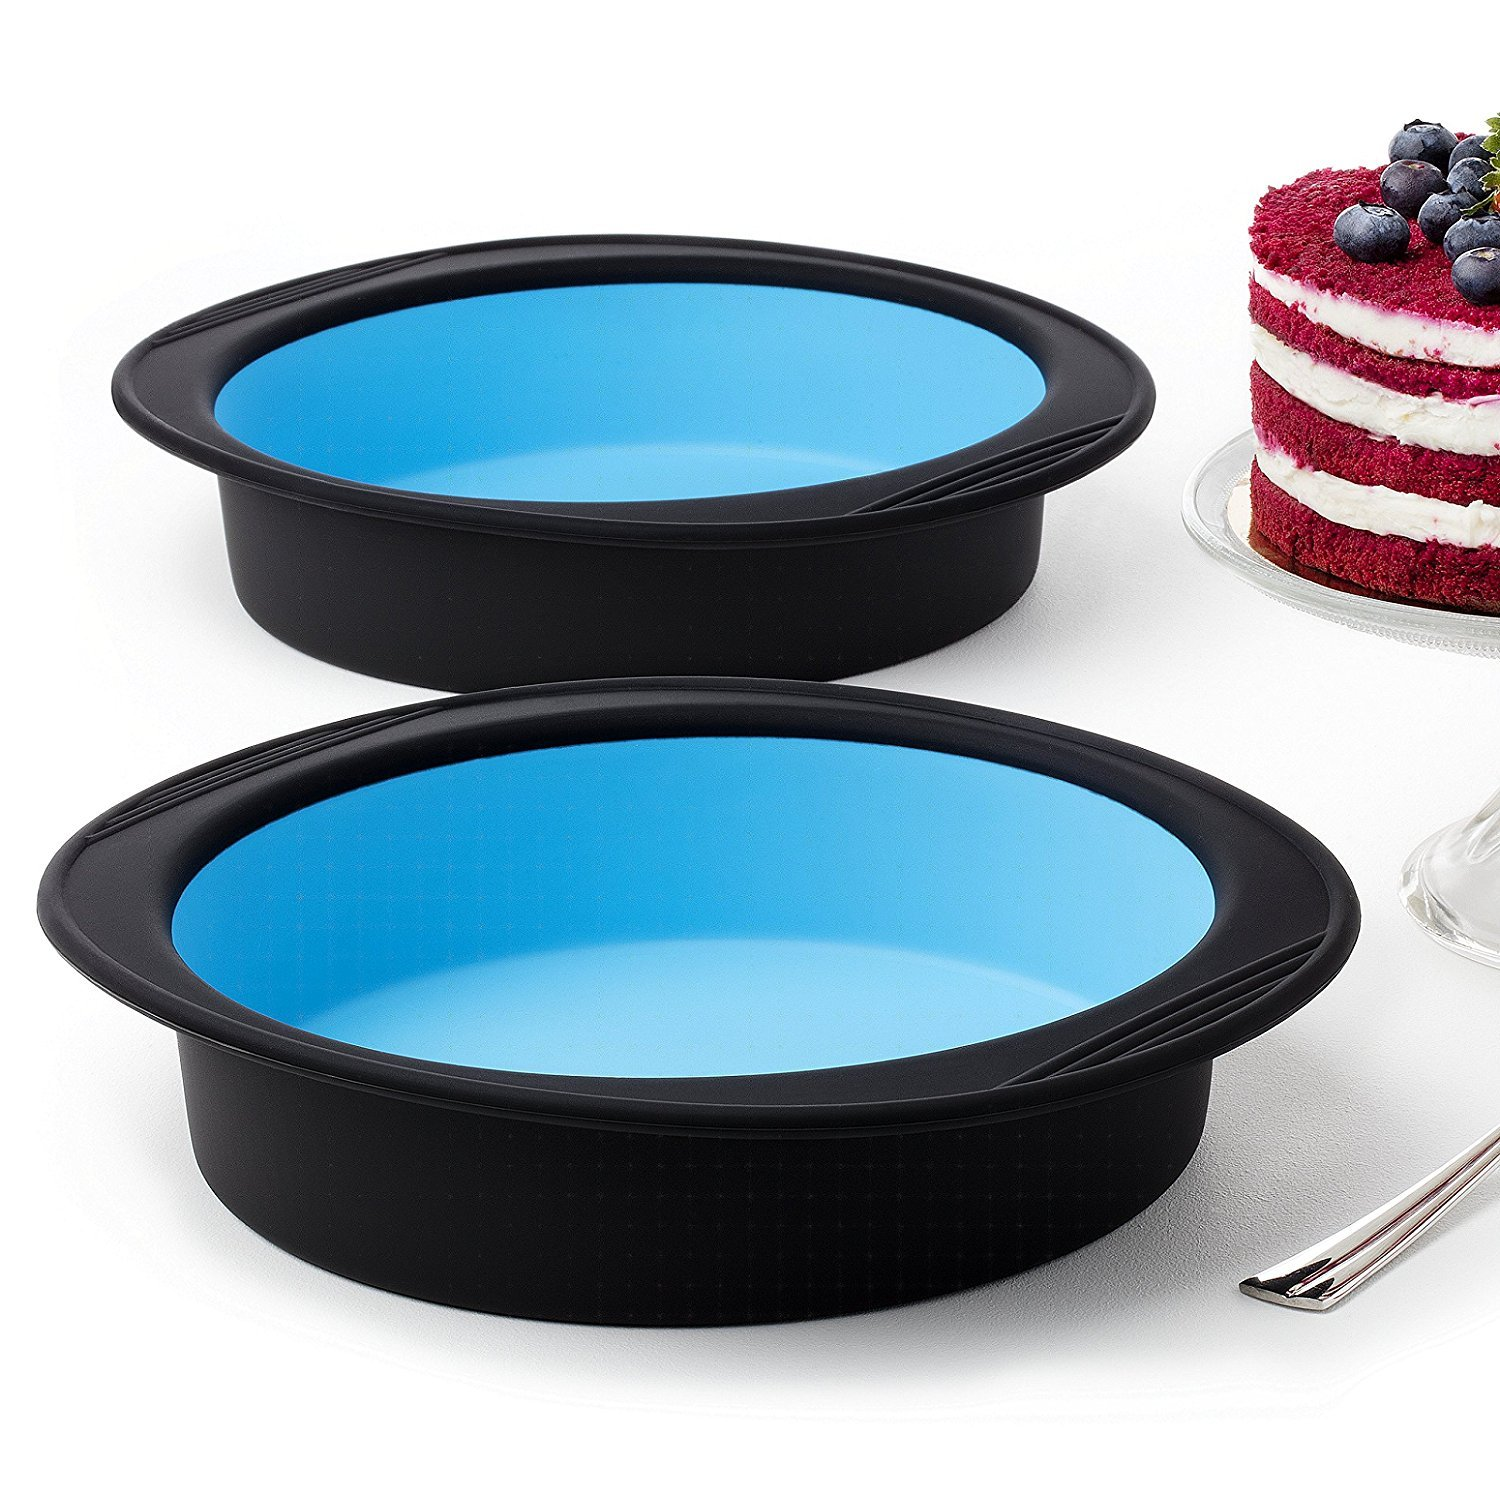 Pack of 2 Big Round Cake Pie tins Tart Black and Blue Silicone Mold Pans